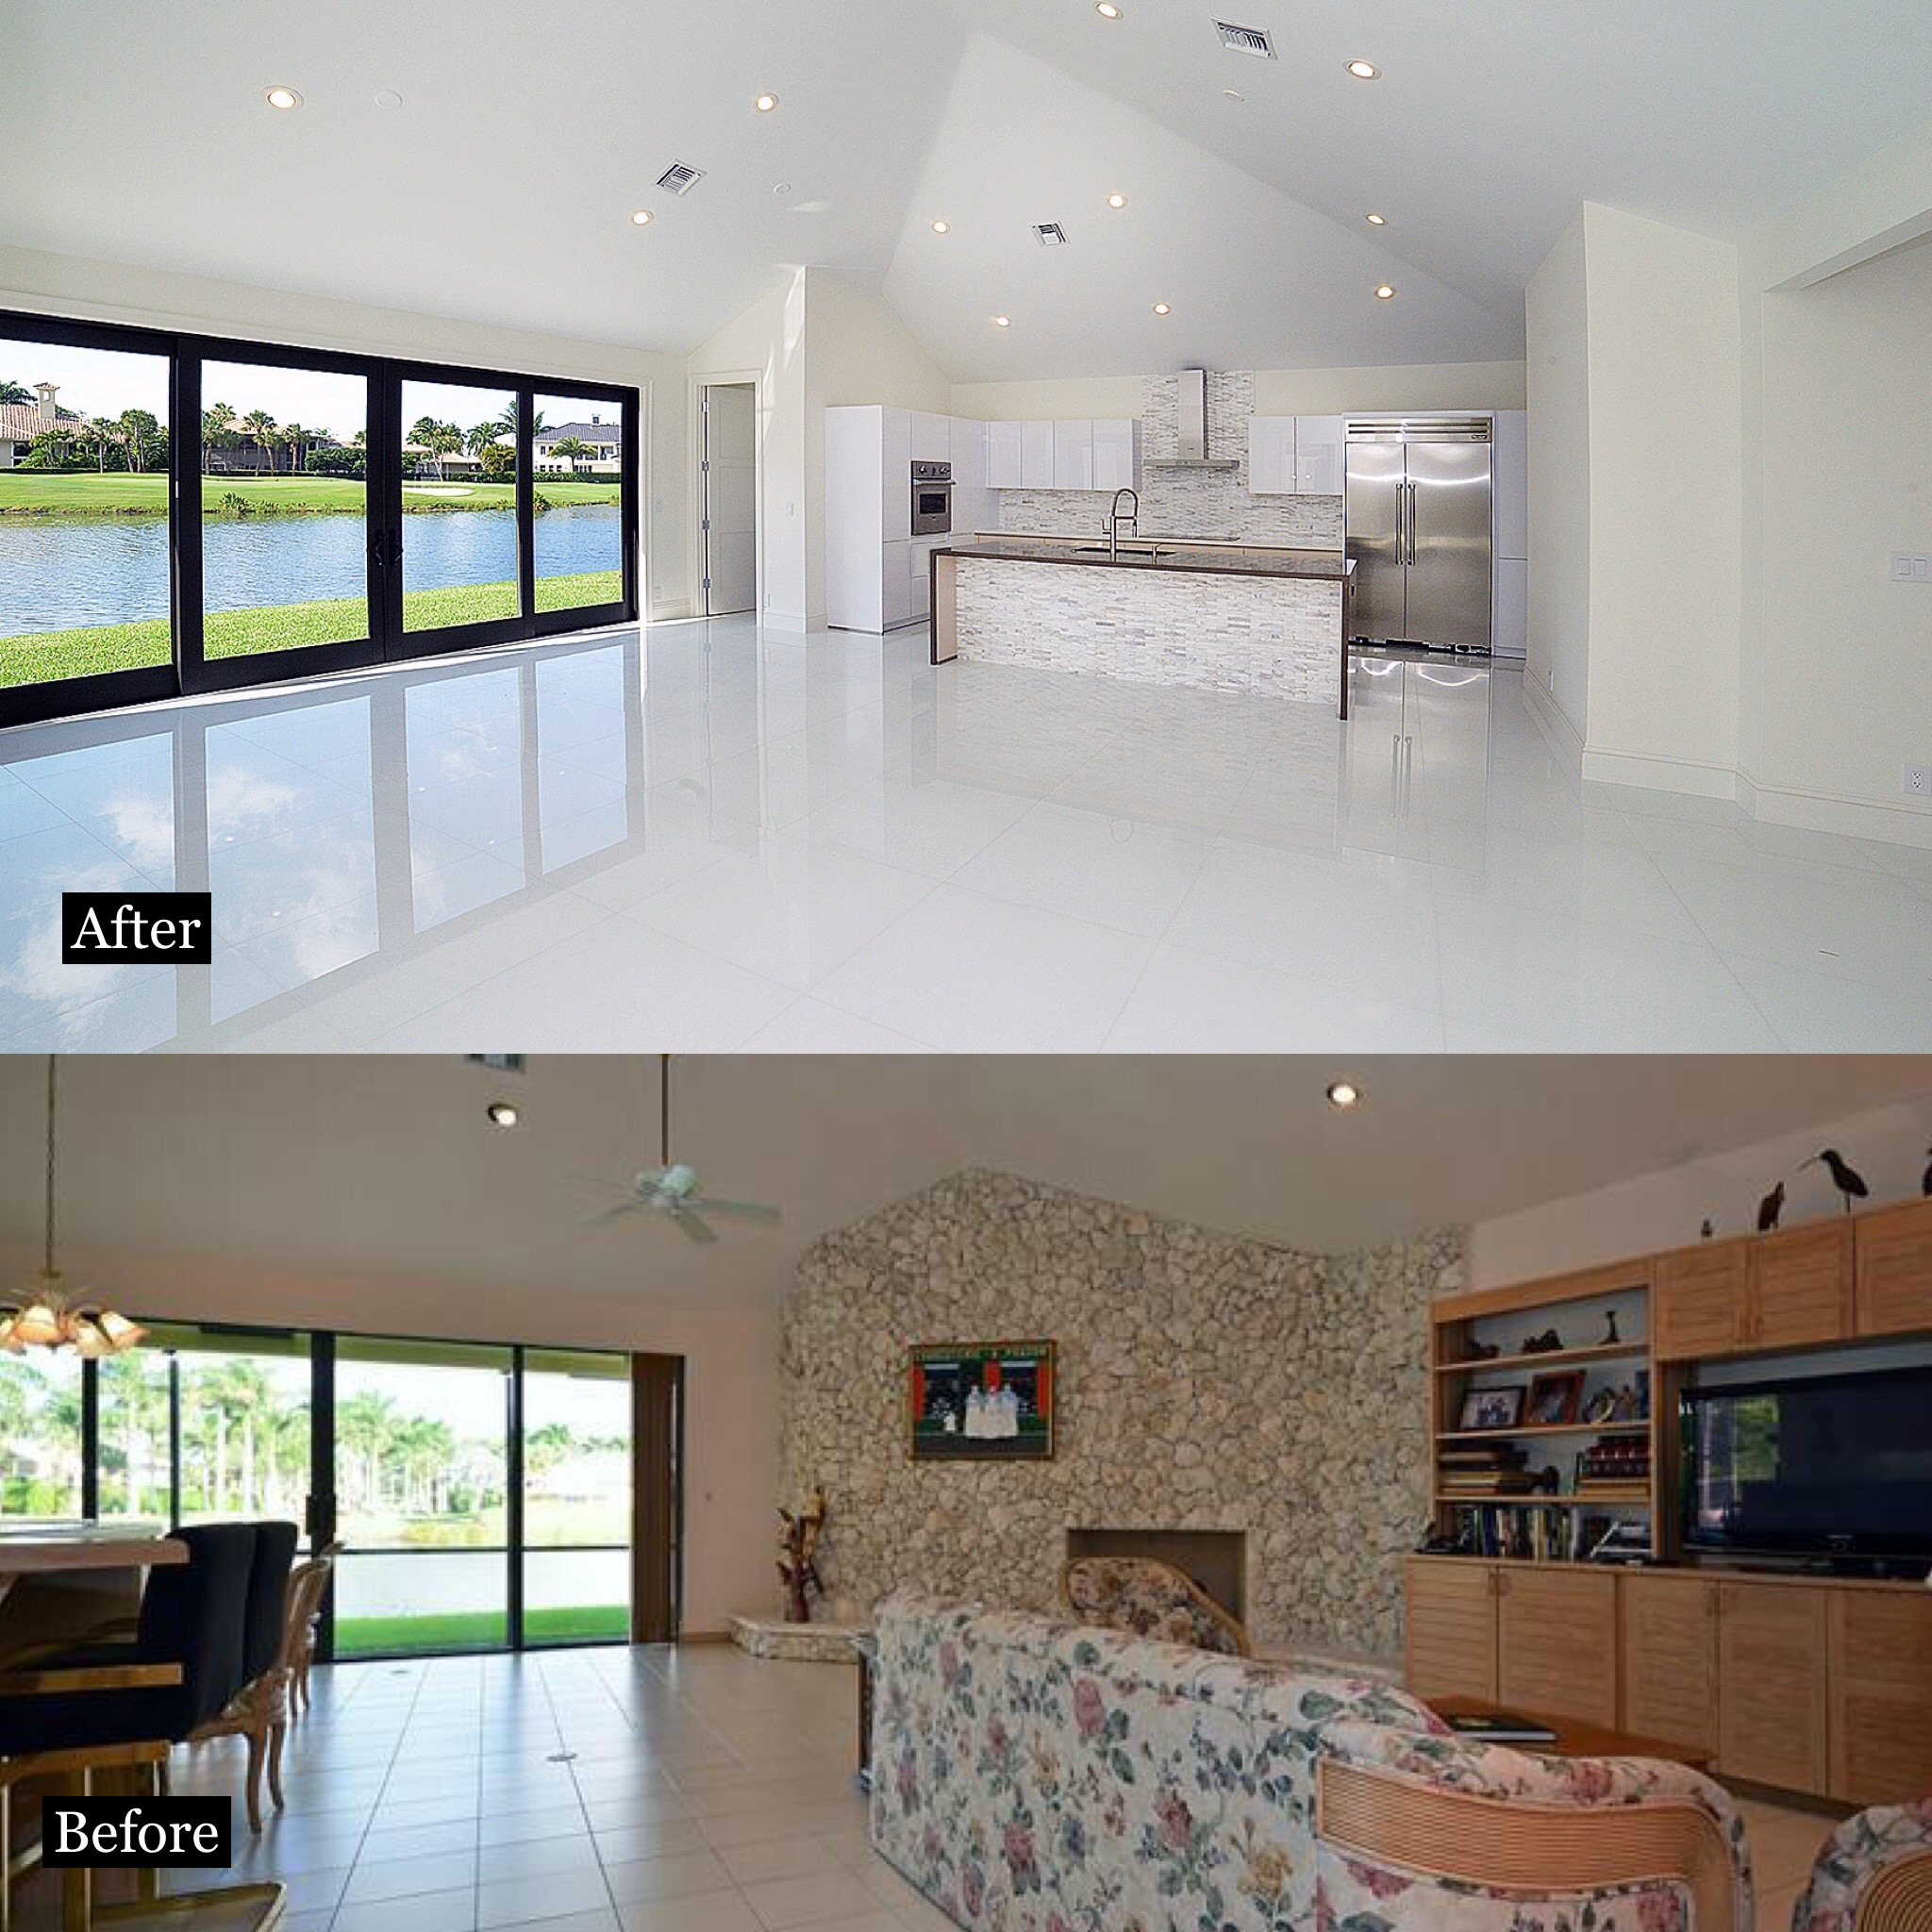 mag real estate & development transformation before after construction general contractor builder renovation south florida boca raton new custom luxury home for sale interior design st. andrews country club 7026 ayrshire lane 6.jpg